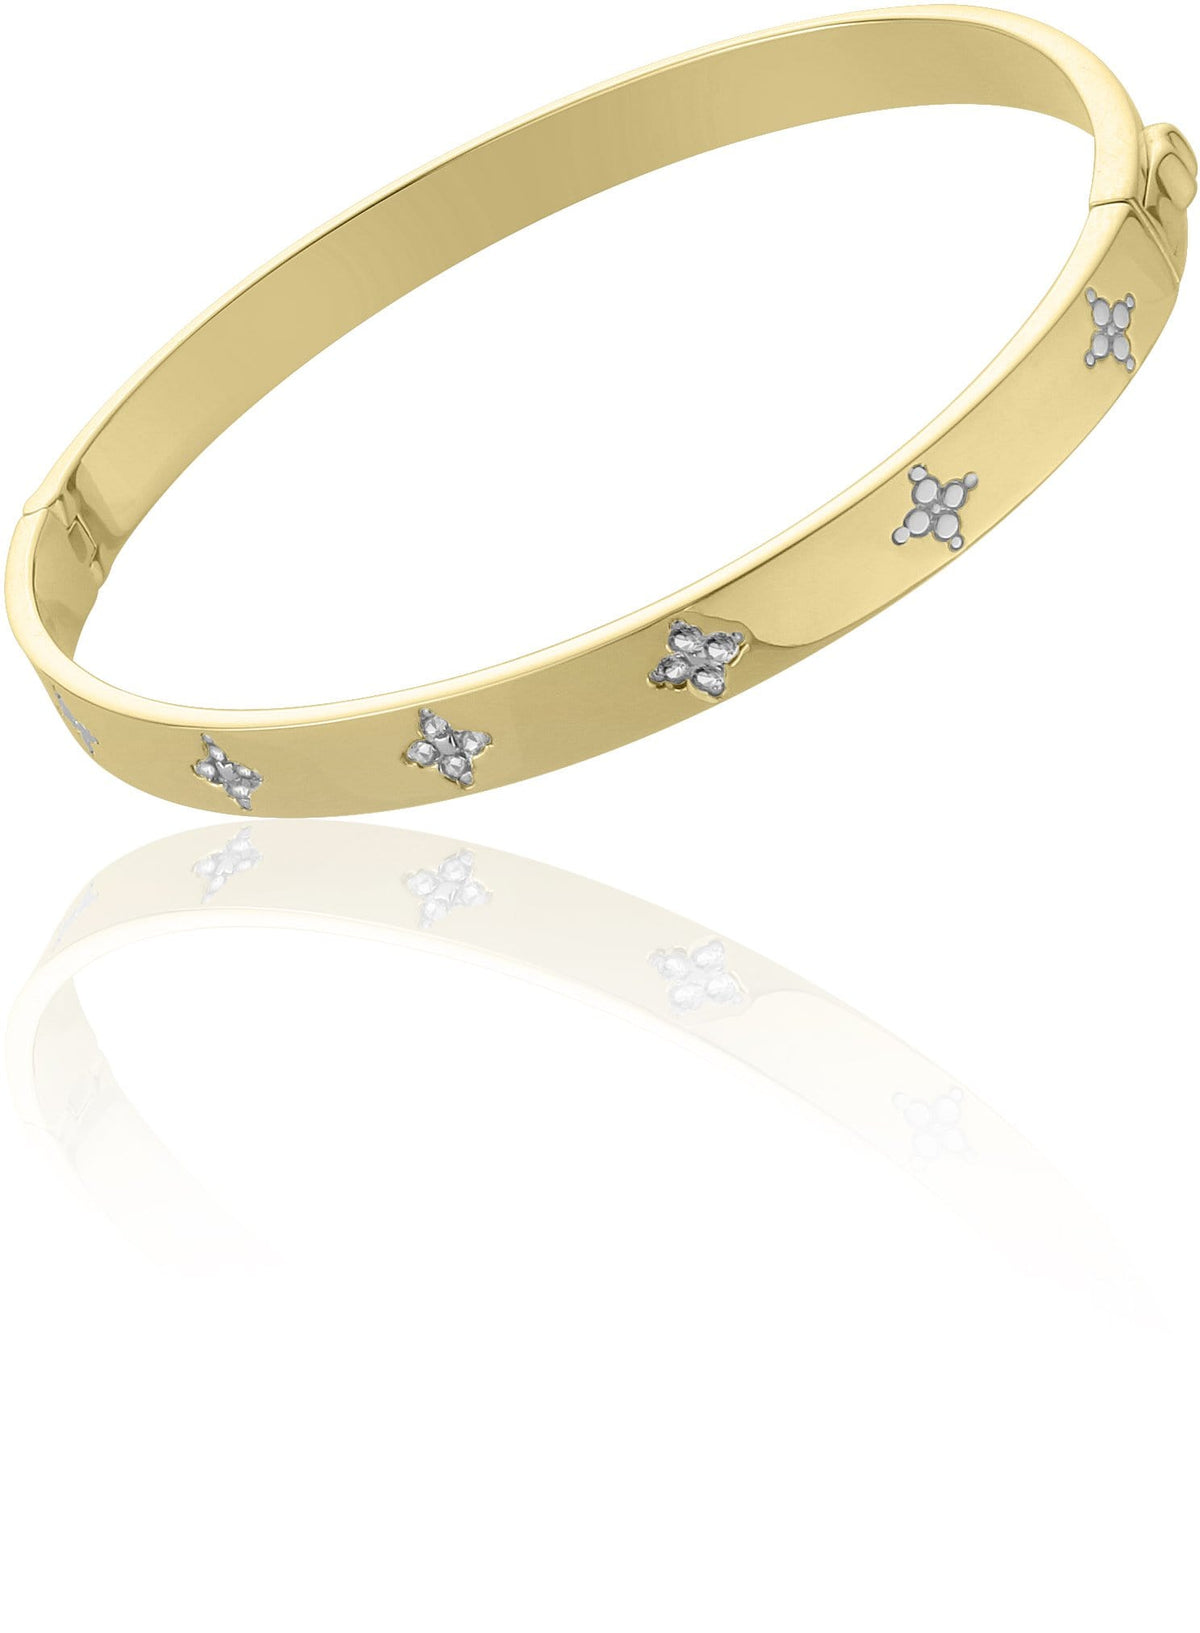 Fleur Hinged Bangle